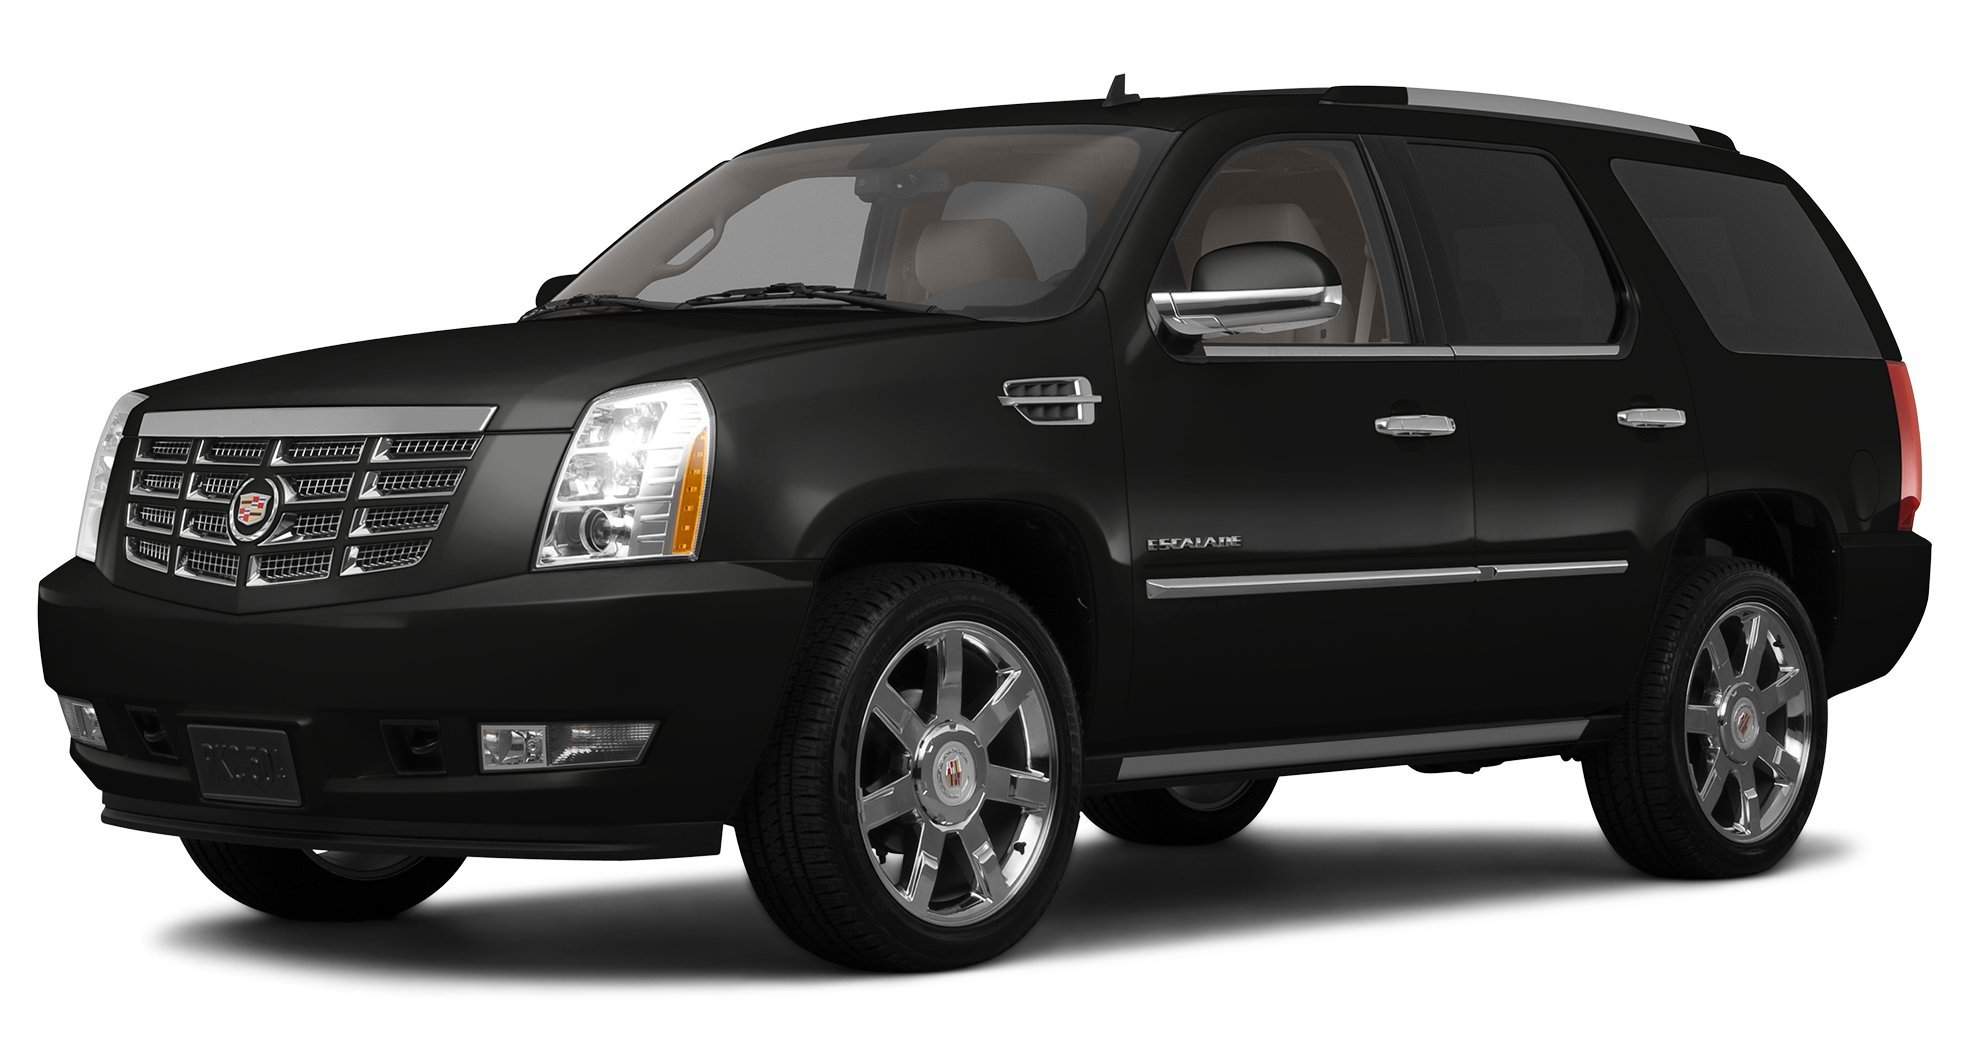 drive pi makes the for technology driveway escalade cadillac perfect in review esv